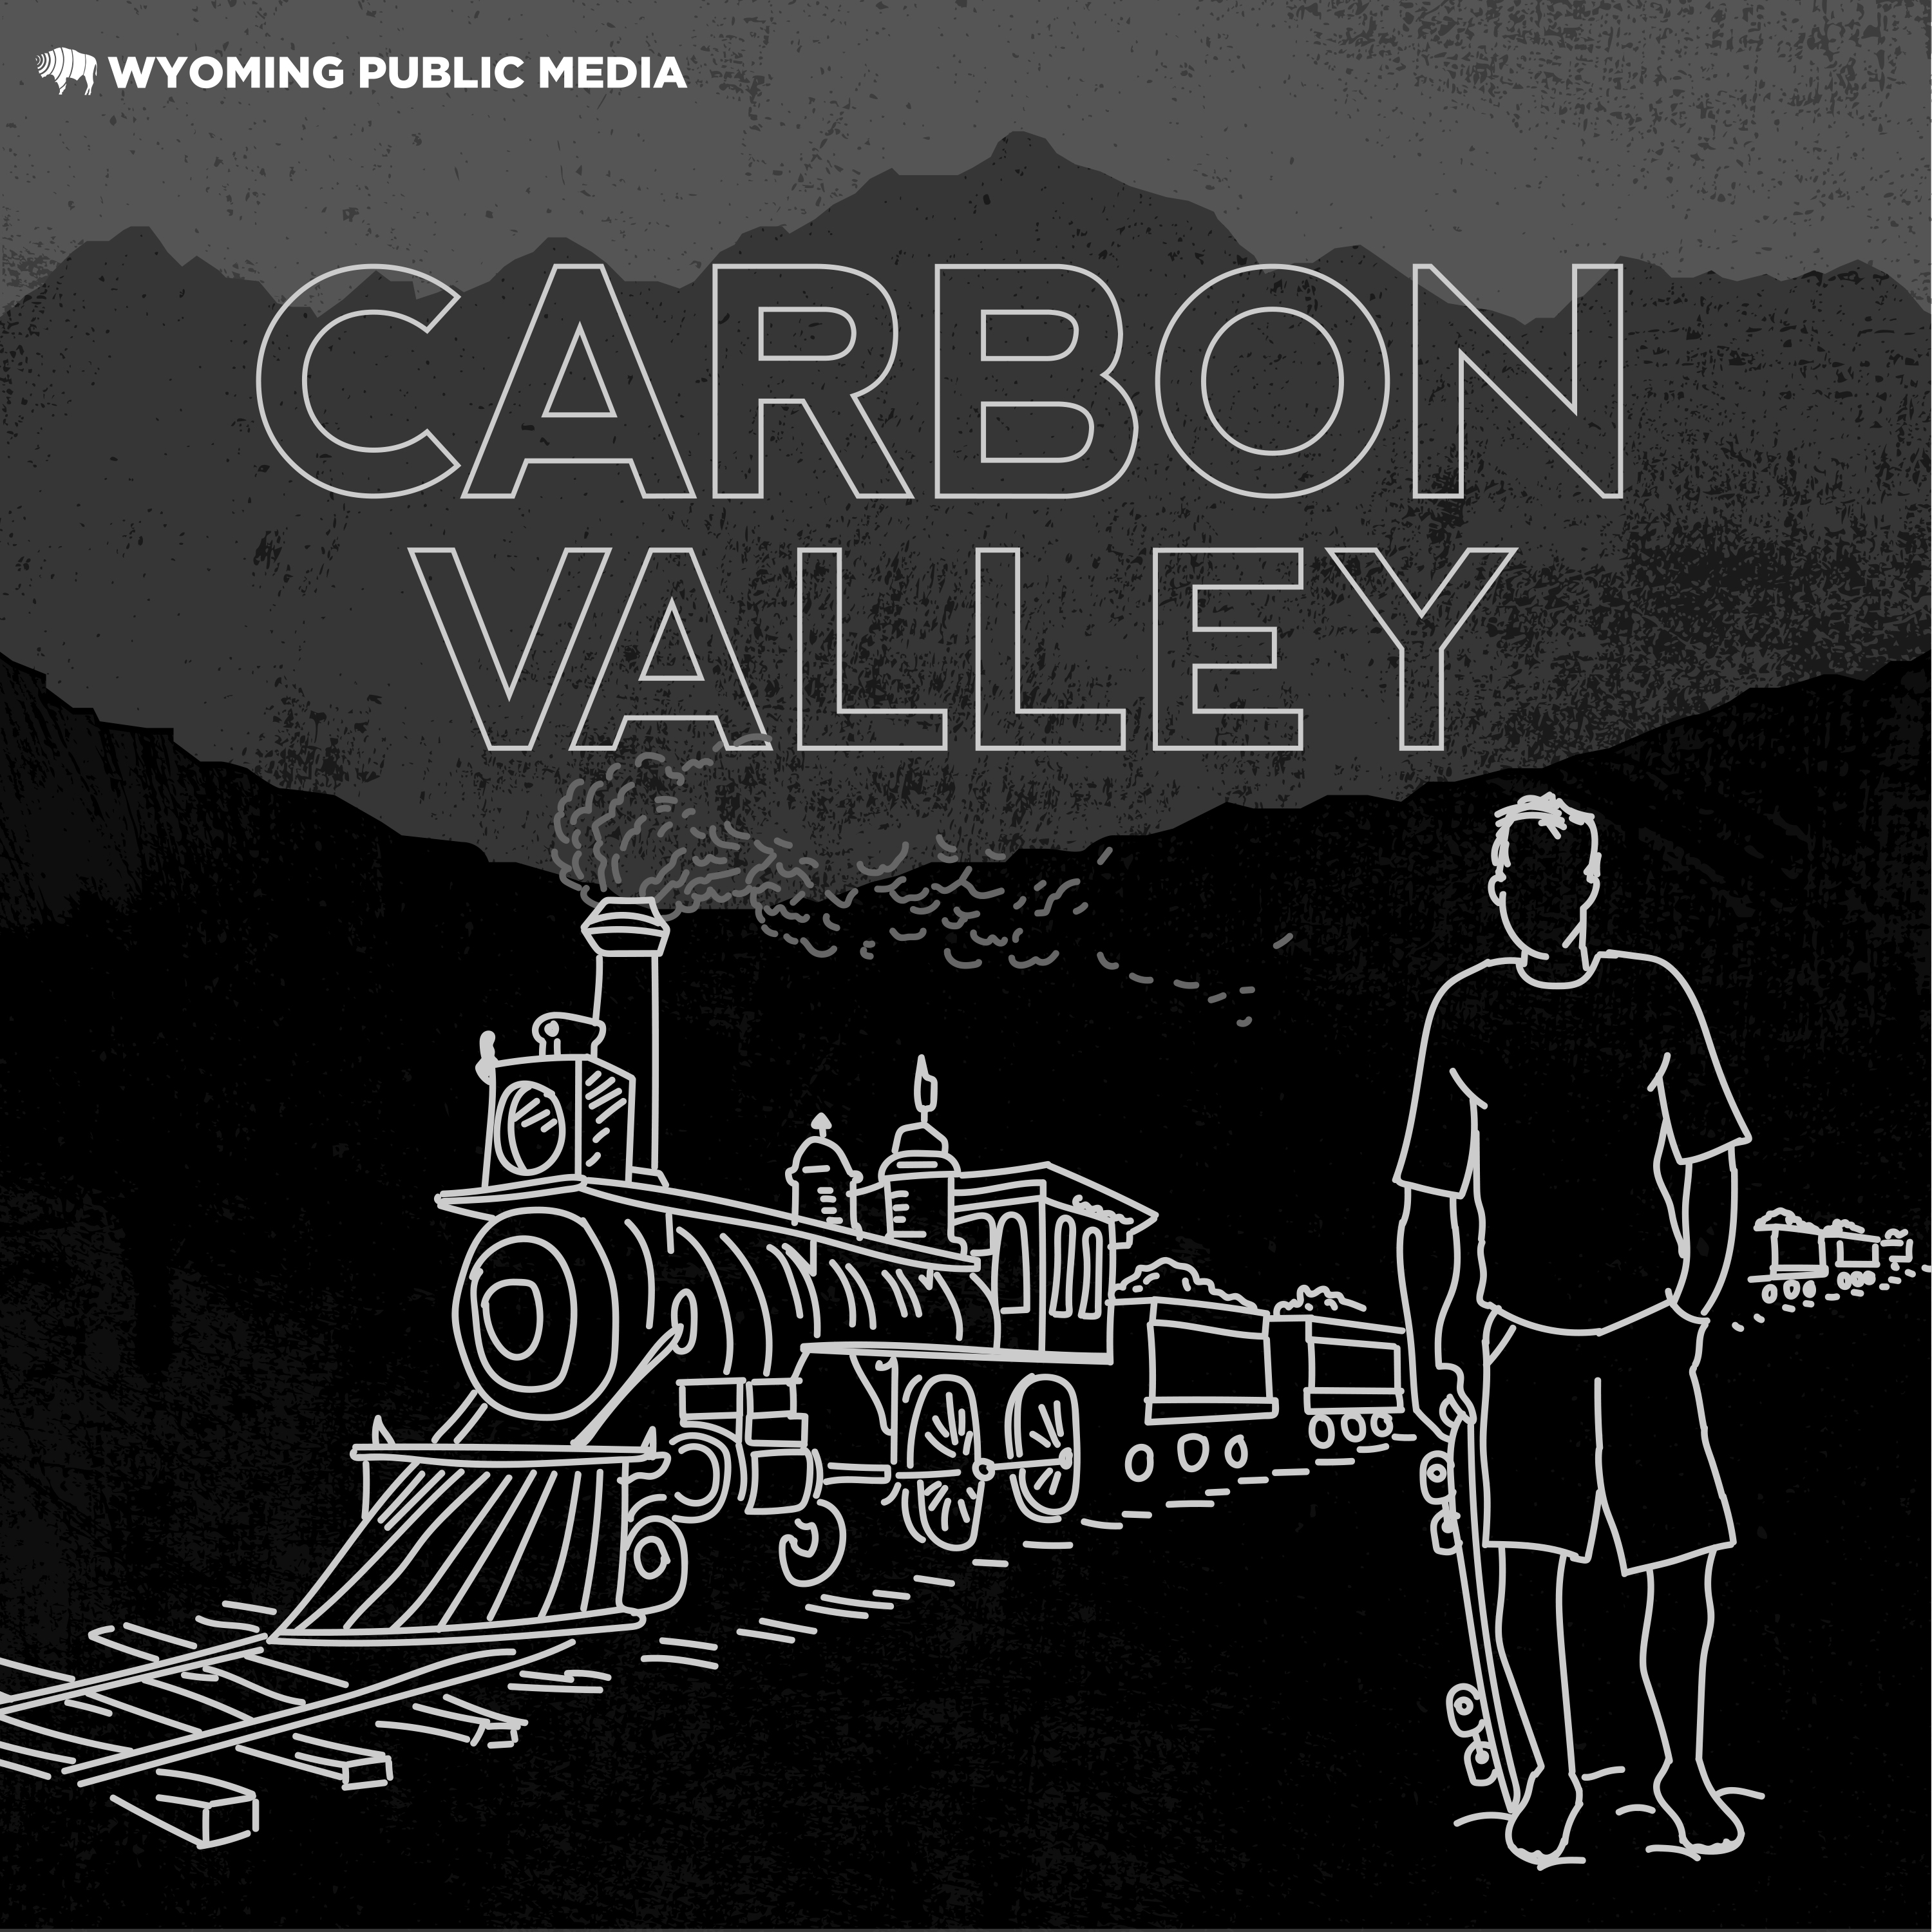 Carbon_valley_podcast_final-3000x3000_small